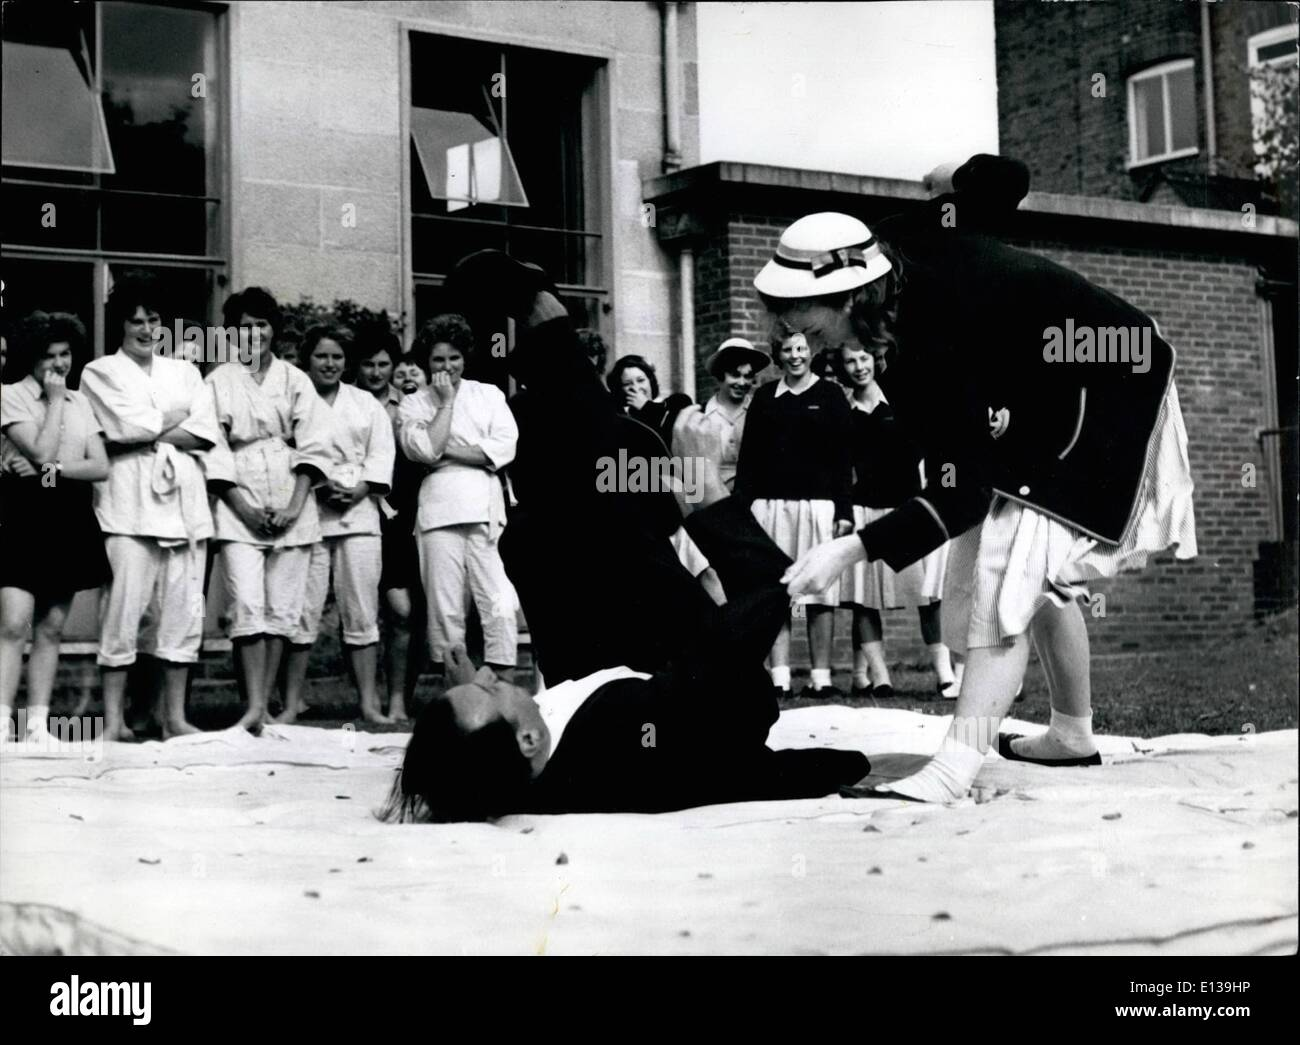 Feb. 29, 2012 - Over he goes: the class laughs as a schoolgirl shows she has mastered are of the Jude holds and throws. - Stock Image